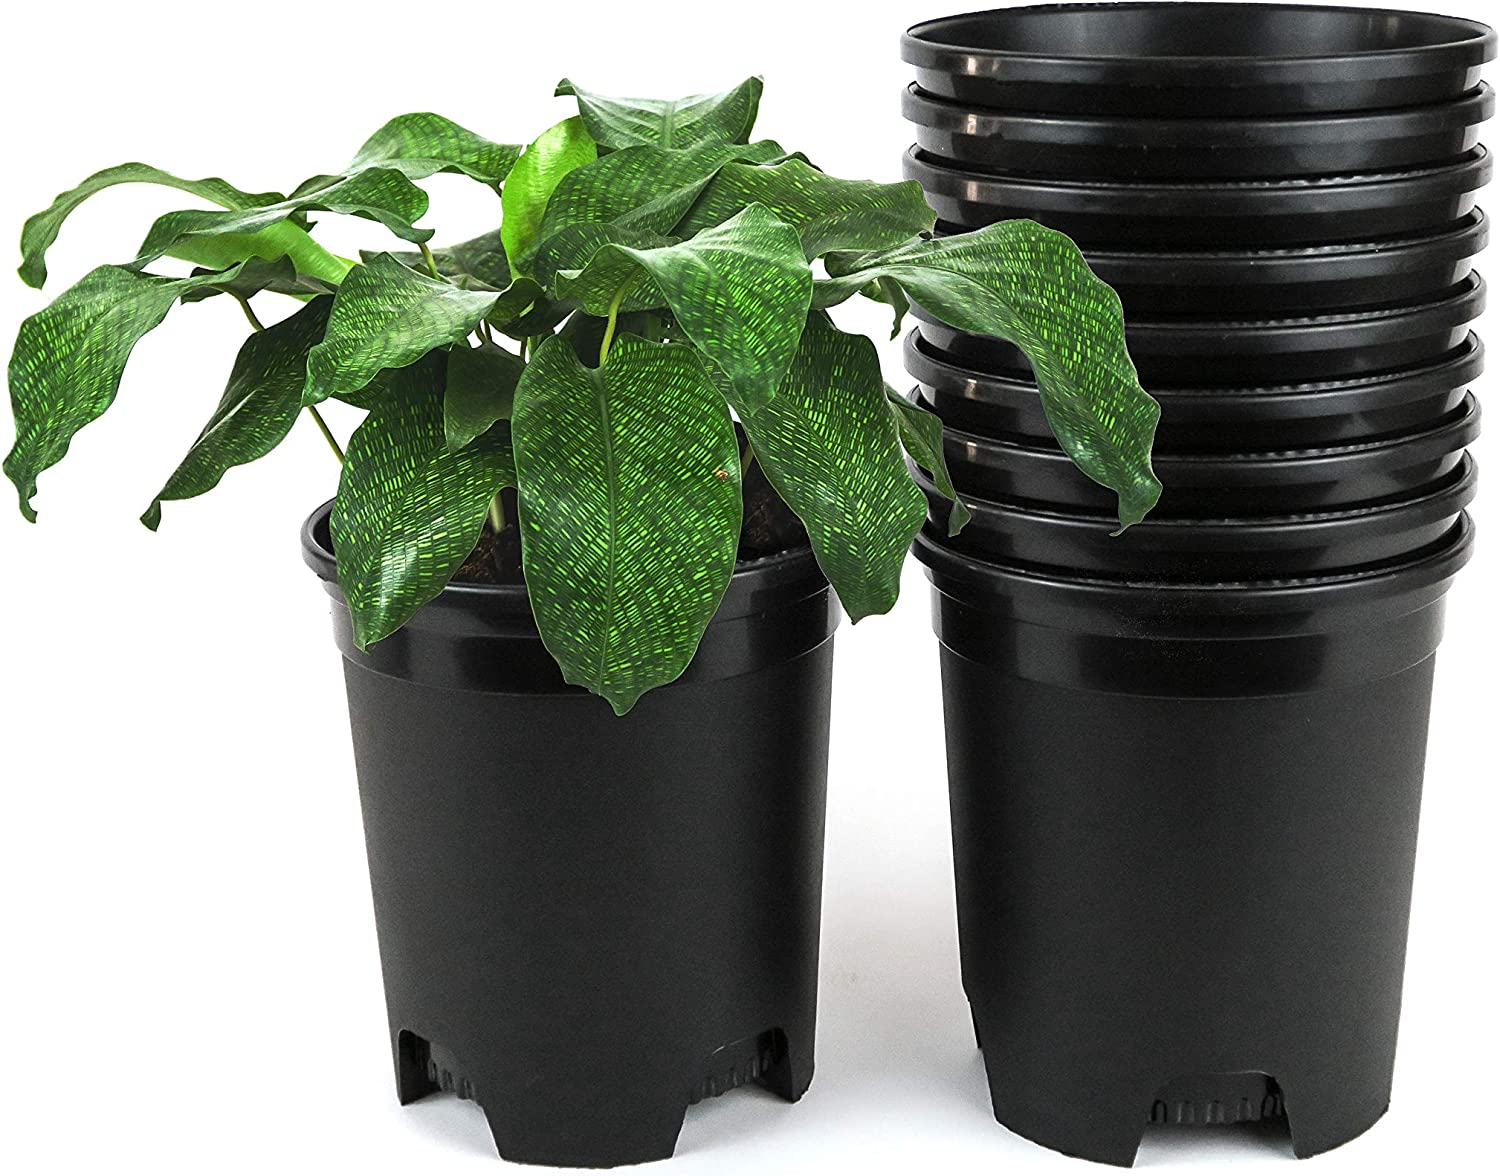 1 Gallon Nursery Pot Challenge the lowest price of Japan Ranking TOP20 Plastic Outdoor for Plants Indoor Planters